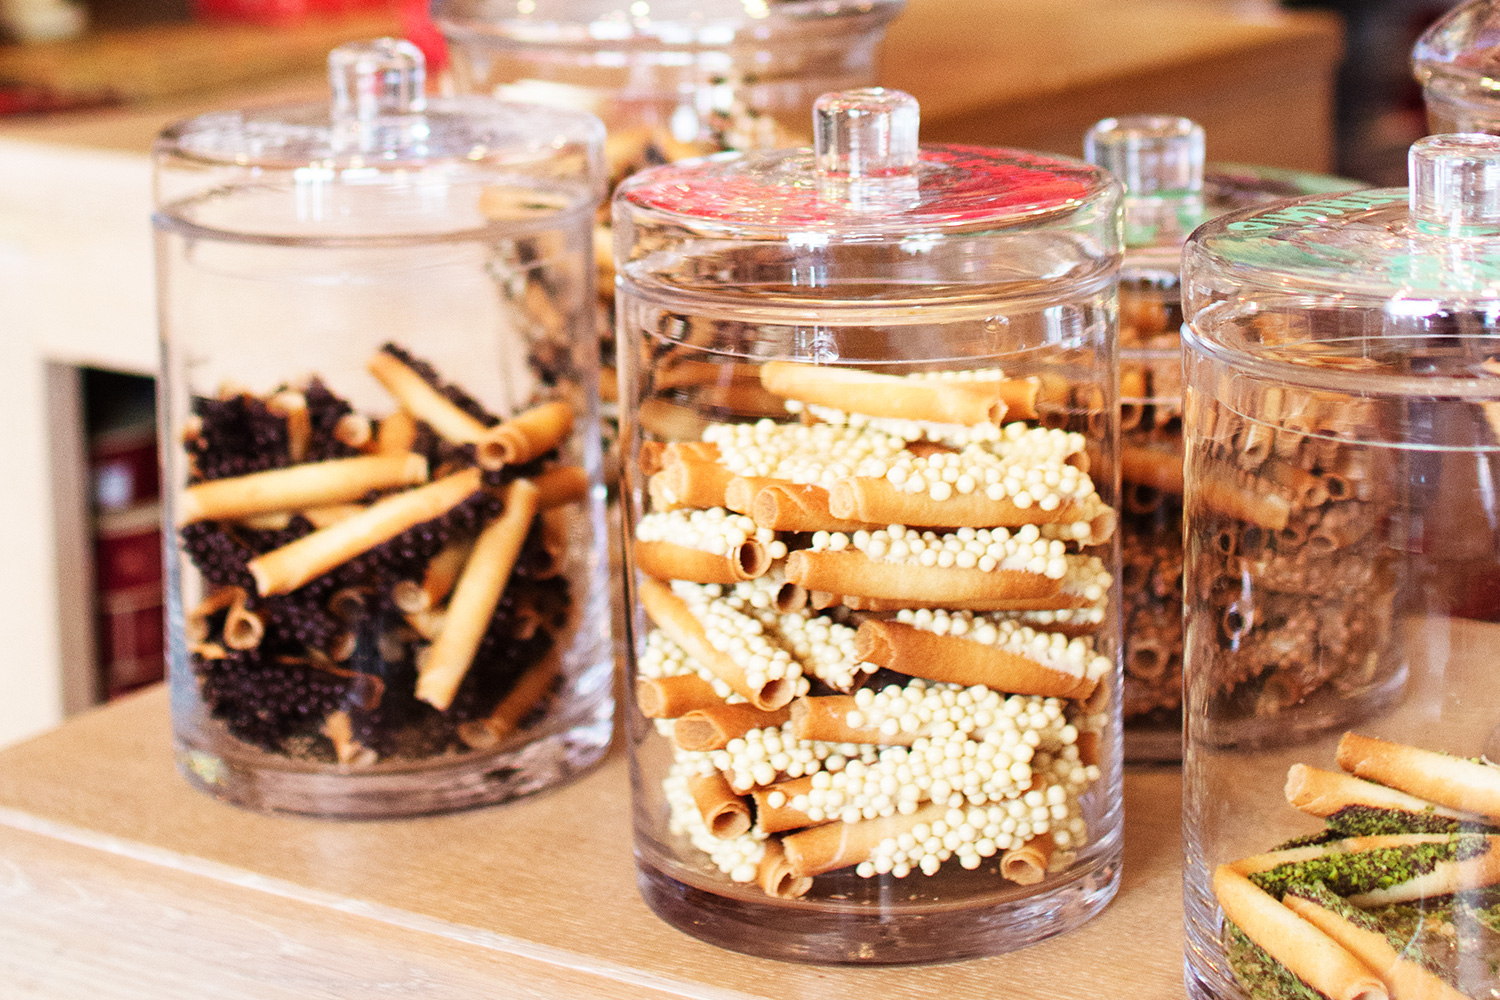 Biscuits in a jar at Biscuits Delacre in Brussels